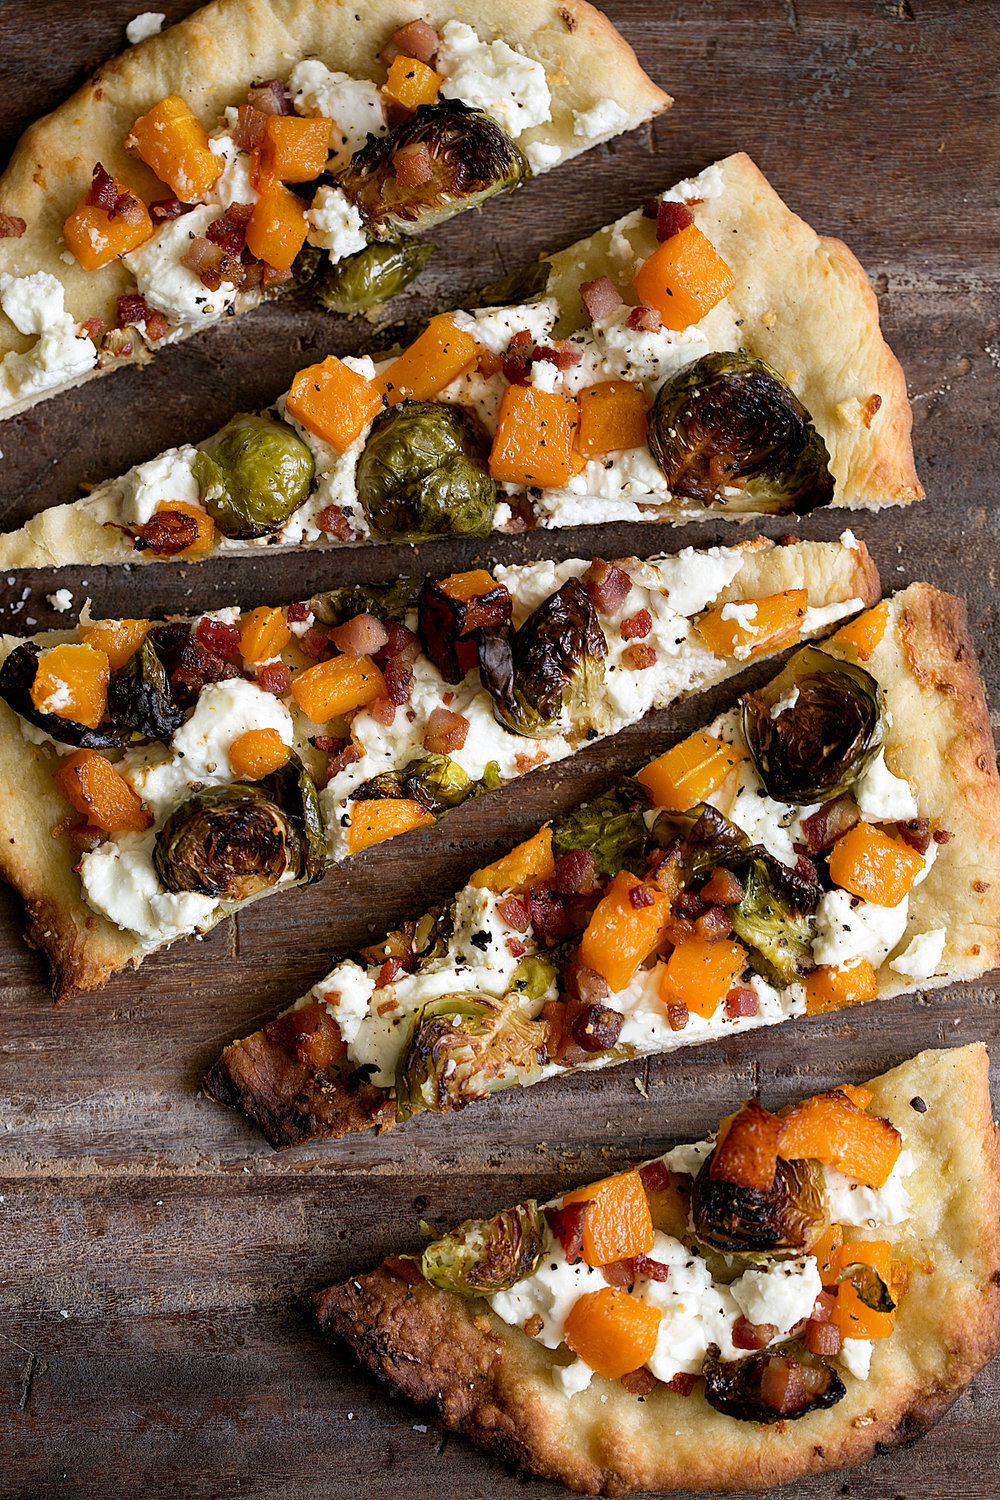 Roasted Butternut Squash & Balsamic Brussels Sprouts Flatbread Pizza with Goat Cheese Take your leftover roasted vegetables and spread them onto this flatbread! You could even add sautéed greens as well.